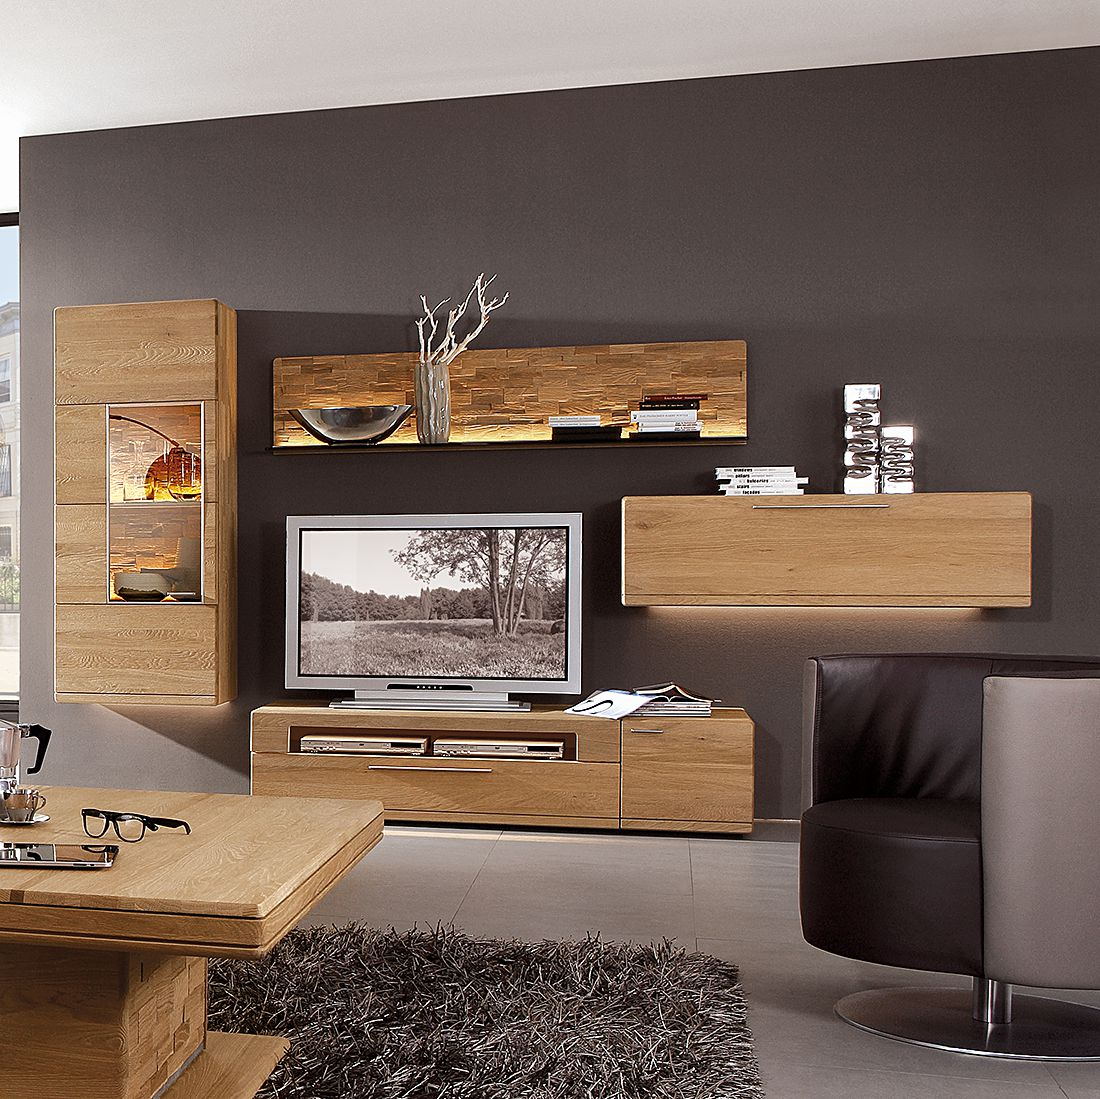 eek a massivholz wohnwand atlantis 3 teilig wildeiche massivholz altholzfarben ge lt braun. Black Bedroom Furniture Sets. Home Design Ideas